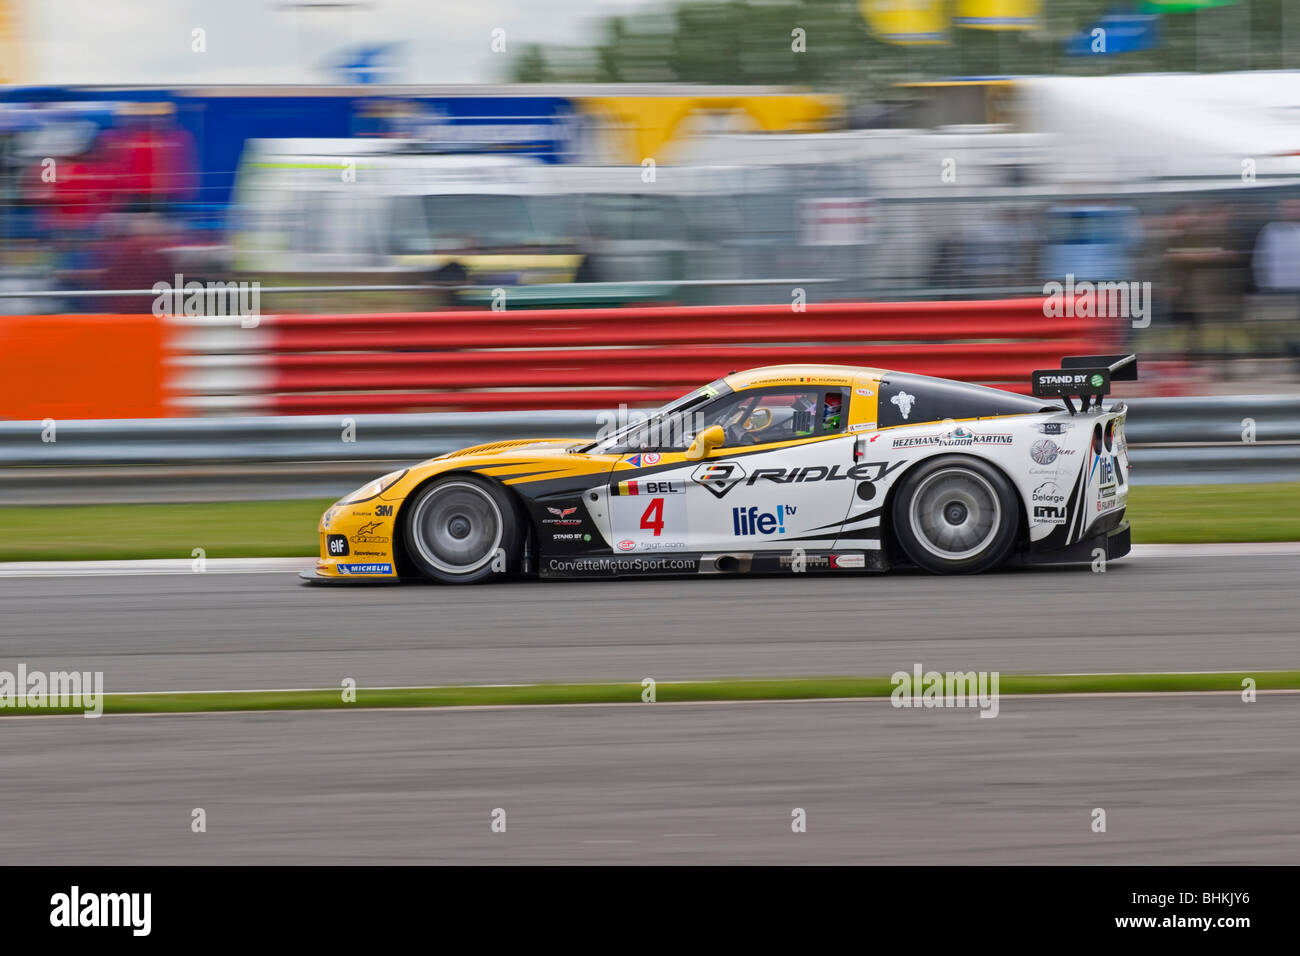 Chevrolet Corvette Z06 going around the bend at Copse at speed during the FIA GT Championship race. - Stock Image